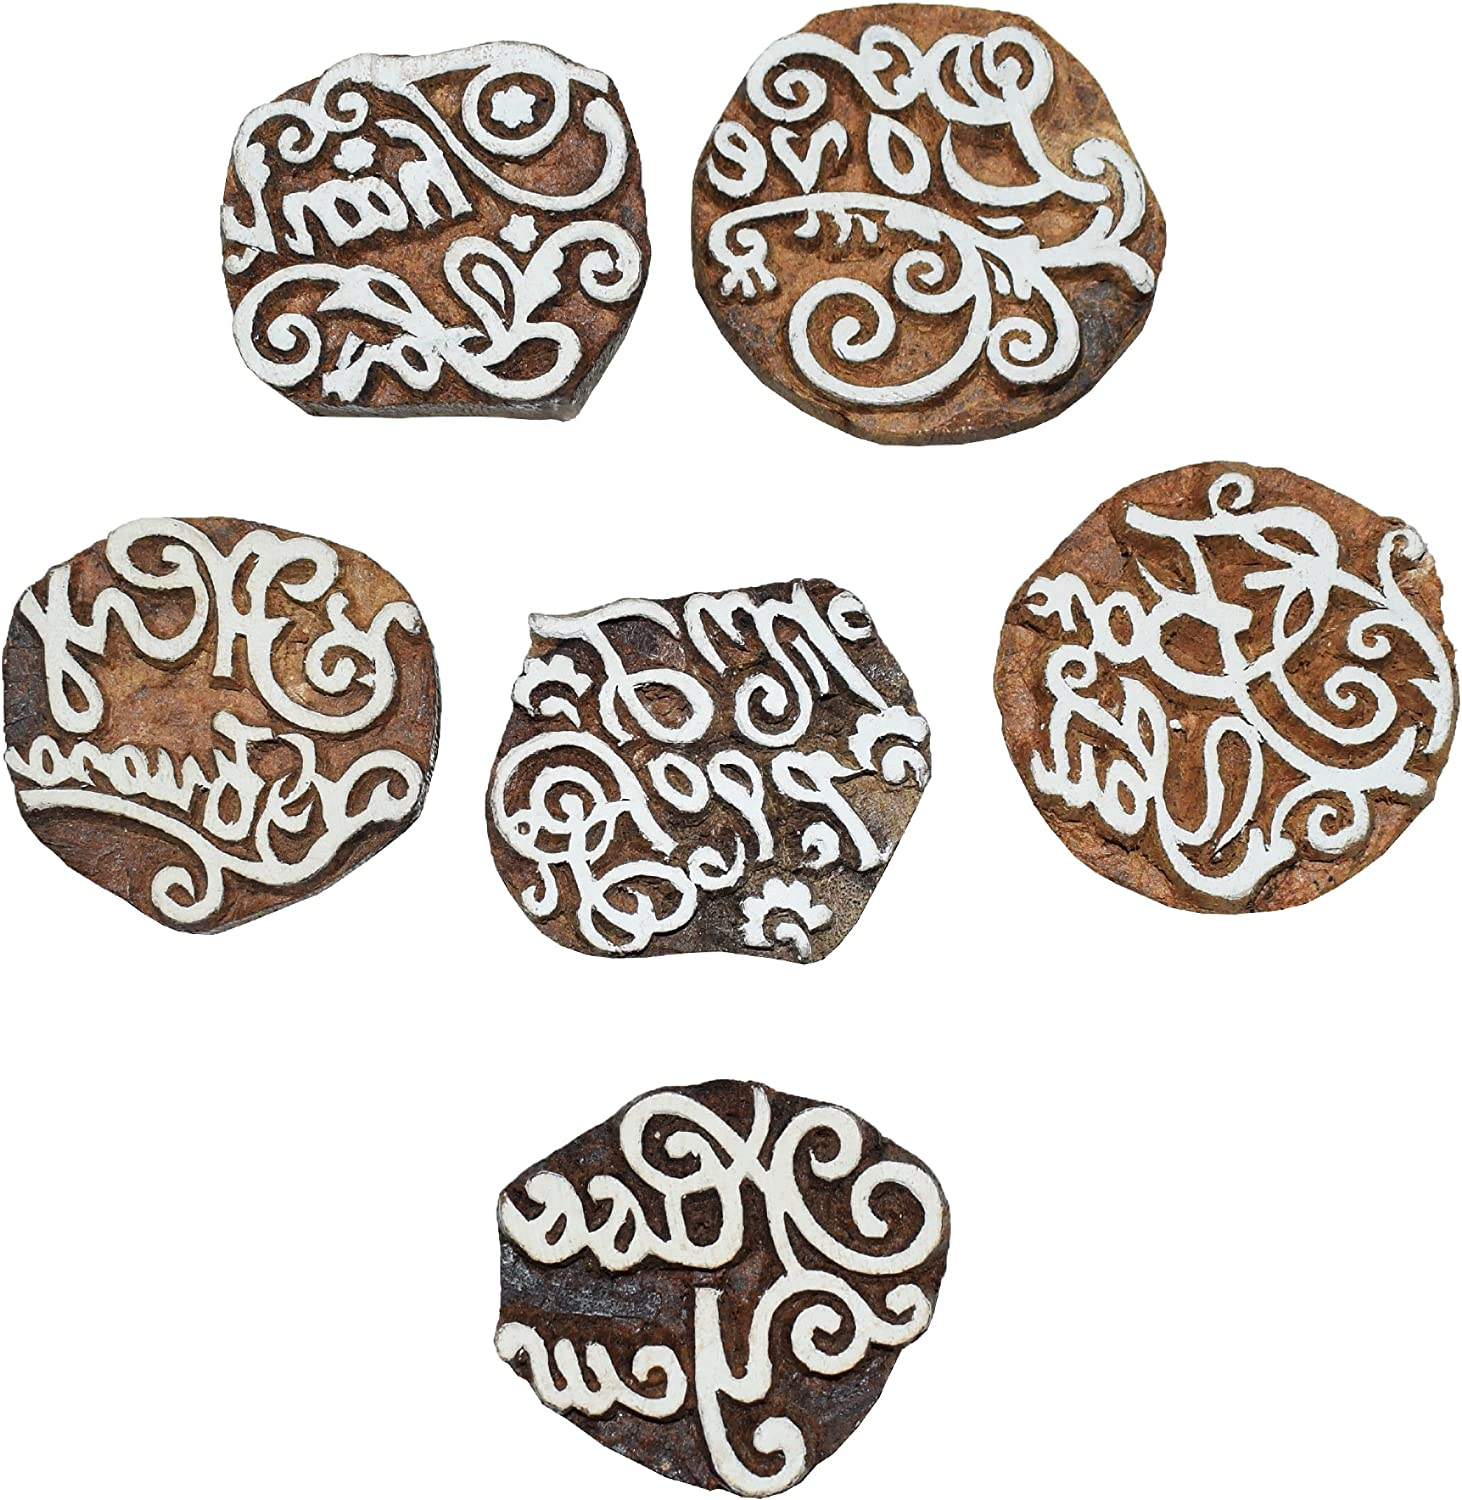 All items in the store Large-scale sale Hashcart Motif for Printing Blocks Fabric Stamps 6 Set of